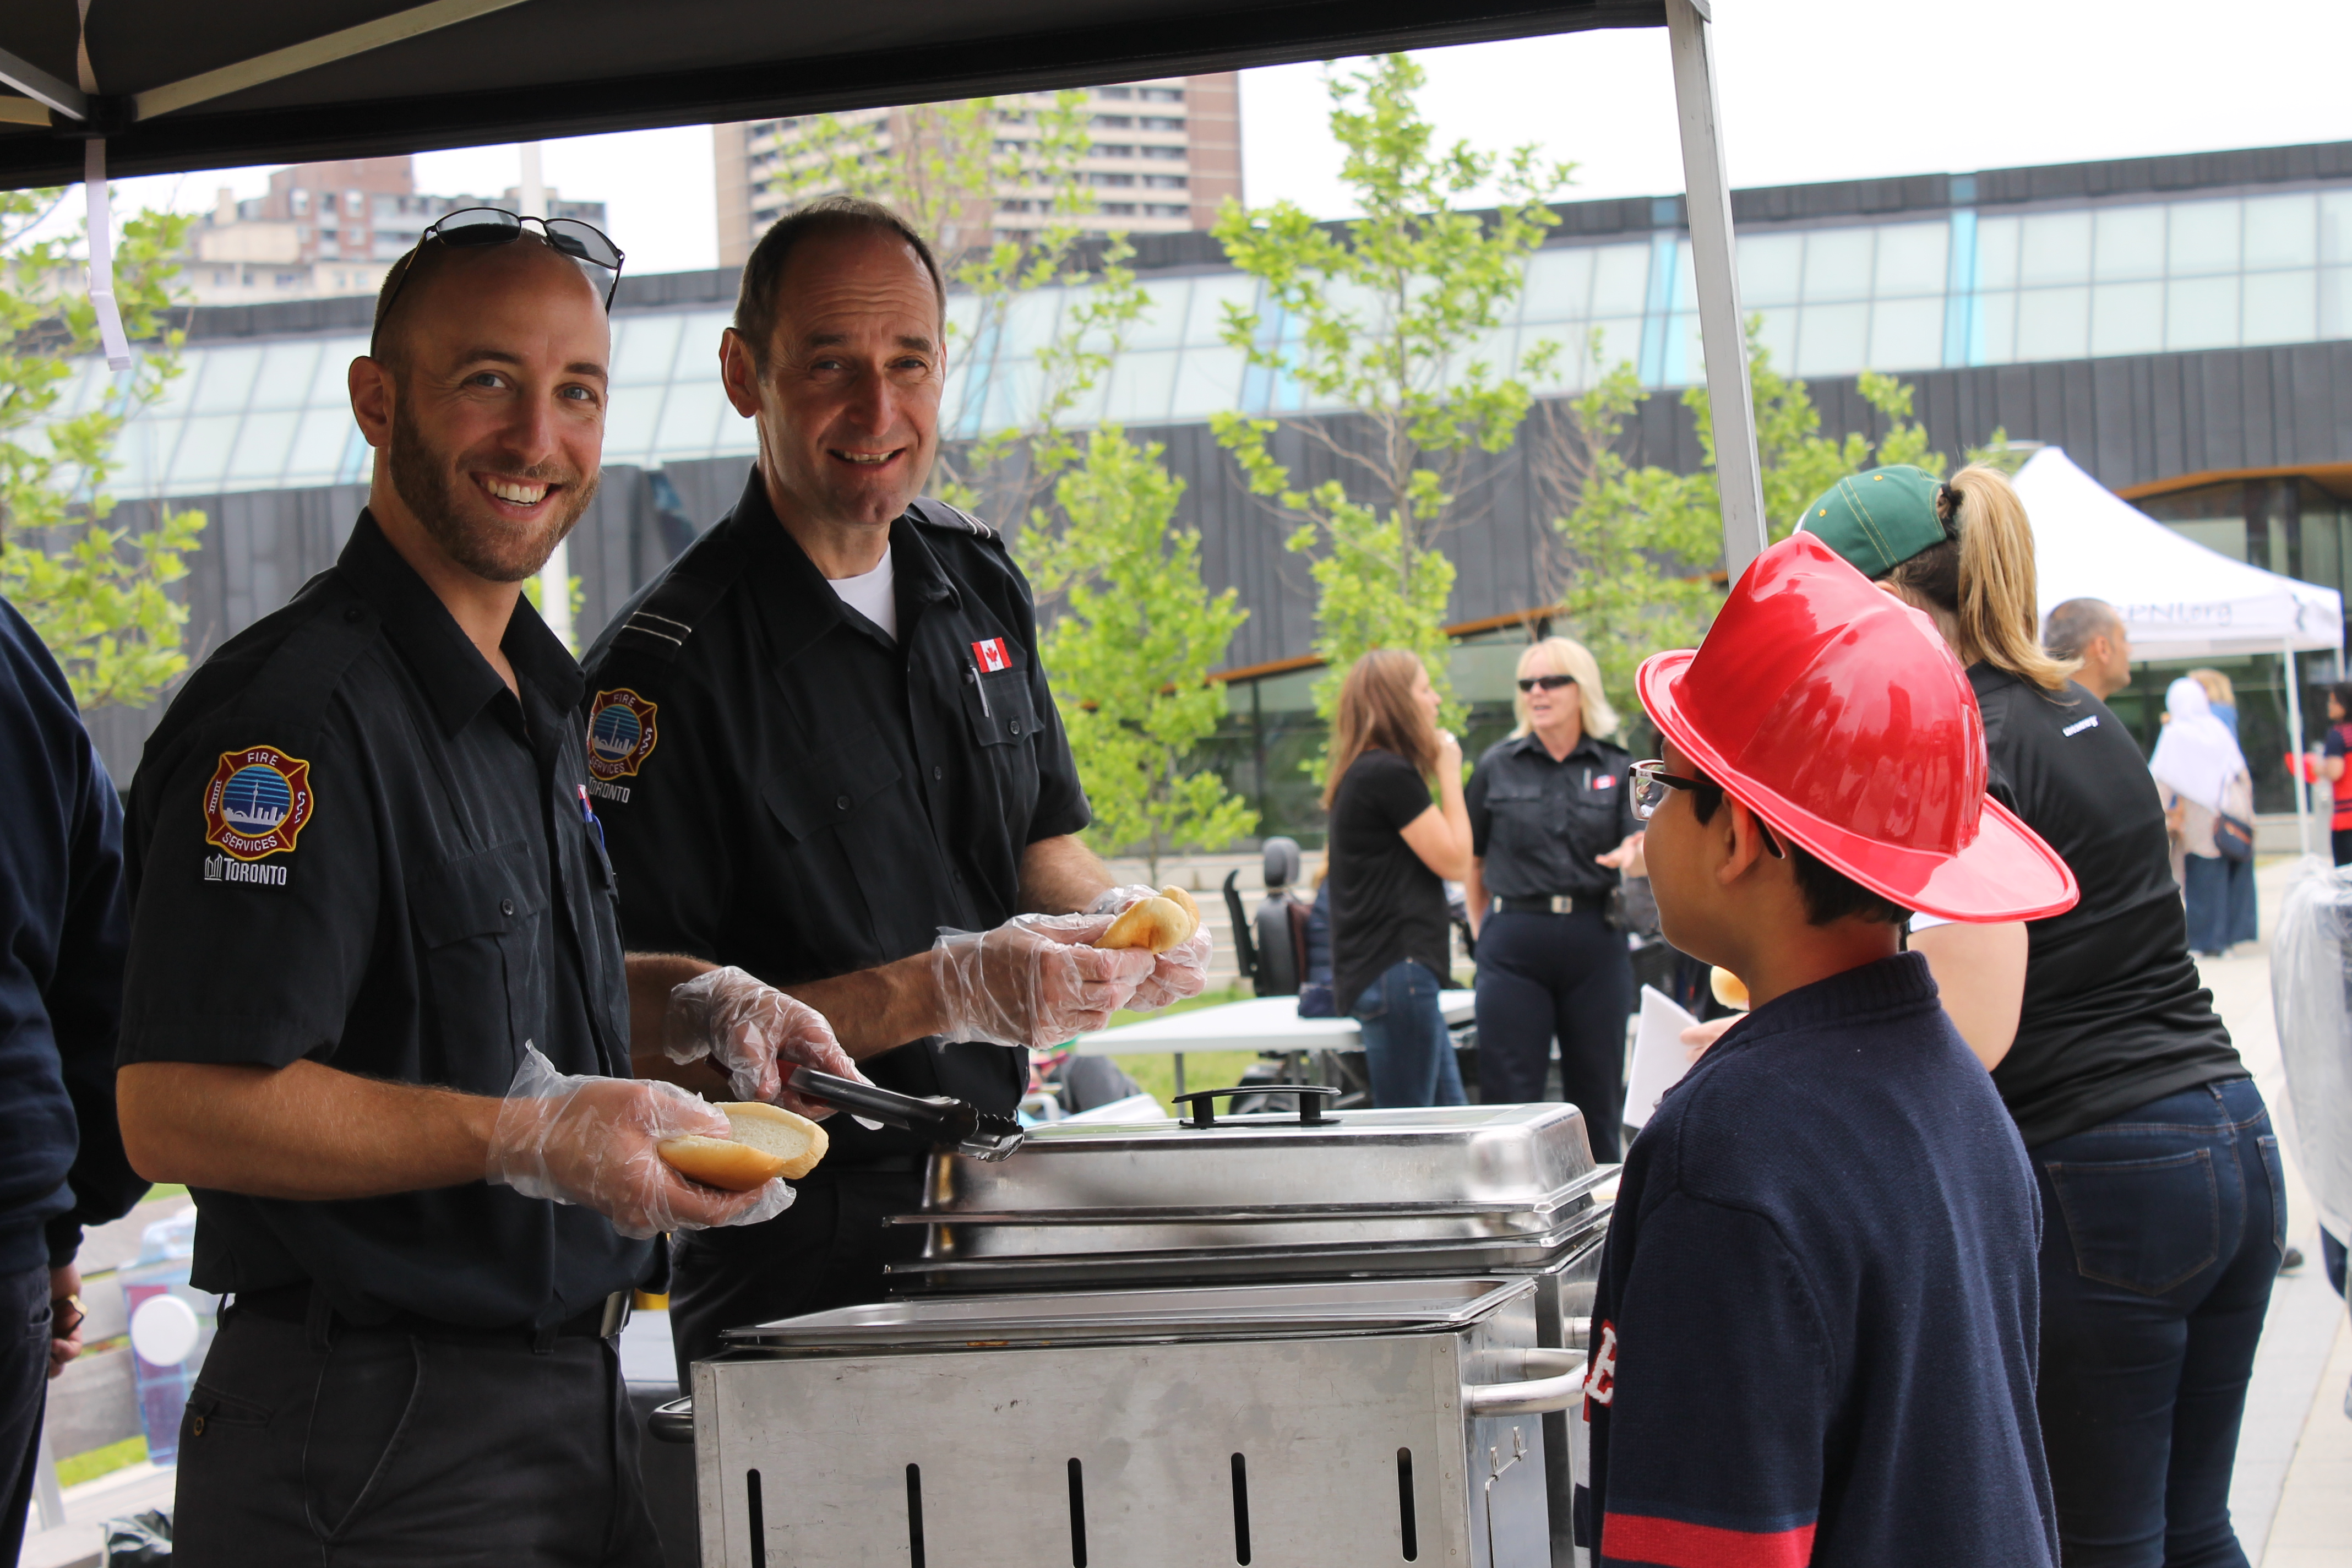 Toronto Fire Services staff are preparing hot dogs for residents at the Community BBQ.